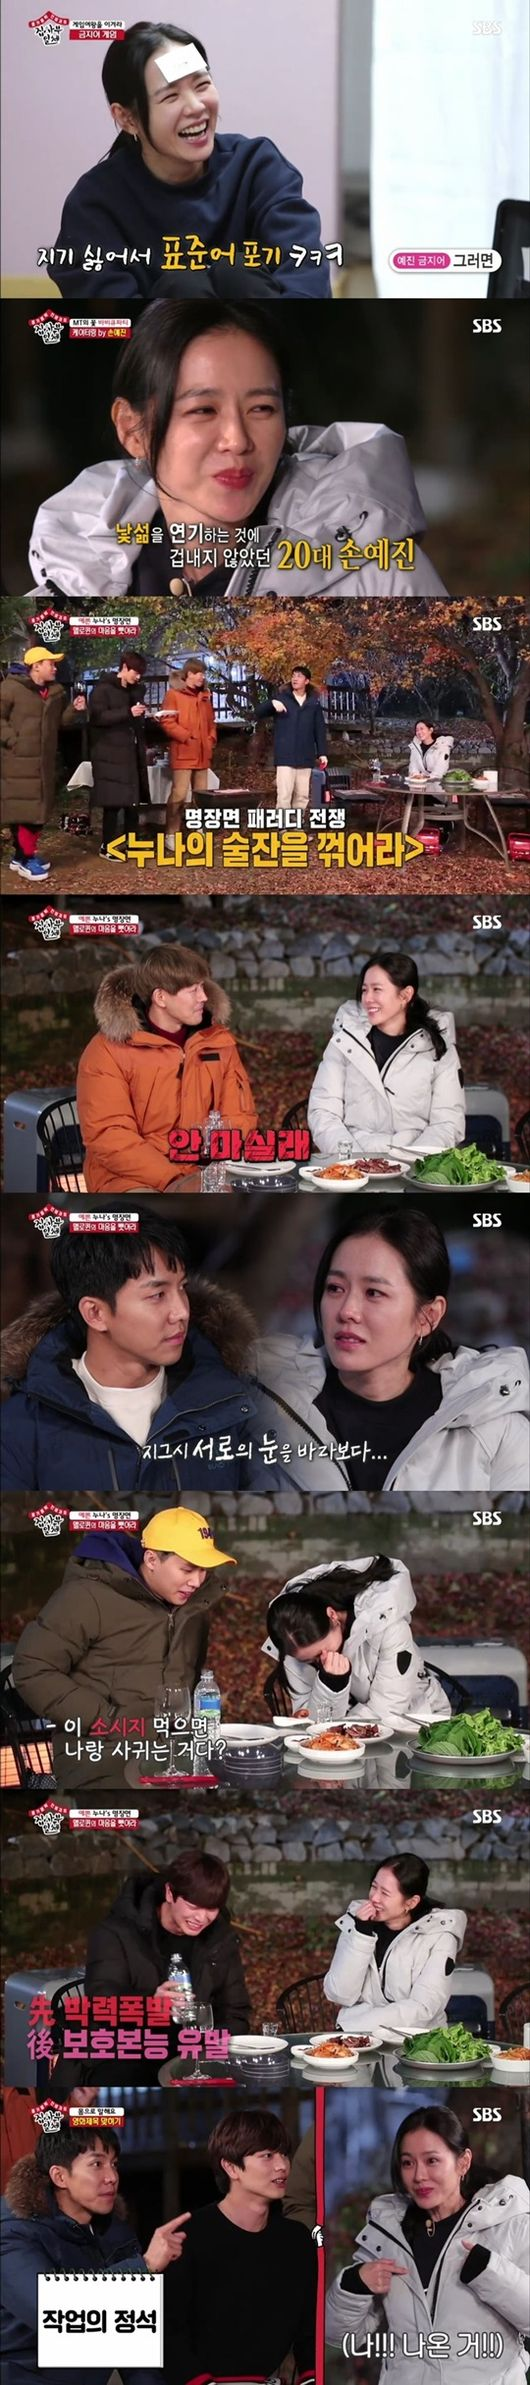 <p> Son Ye-jin this in 2019, 'All The Butlers'in the members to be reunited with some of the 'best 1 minute'. What, according to the 9th(Sunday) will be broadcast SBS 'All The Butlers'furniture audience 11. 1%, the Top 14. 2%(NCR, Part 2)to this day viewership high-run record this. This day 'All The Butlers'is 20 years old to 49 years young viewers target the 2049 target audience 5. 5%, KBS2 'Happy Sunday - Superman is back, 1 Night 2 days' (4. 7%), MBC 'Palace of the peoples husband' (1. 4%)and the gap represents the same time zone 1 up eye-catching. This day 'All The Butlers'in Lee, Lee Seung-gi, Yang Se-hyeong, Yook Sungjae 1 year anniversary, the MT facilitator actor Son Ye-jin together with the special MT, enjoying the look was unveiled. Son Ye-jin is a game, the game, dance the dance, perfect preparation and for reducing a reverse attraction with the members and the viewers captivated. A long time top keep the top of the actors meticulous planning and self-management, of human attraction and the 'perfect one'may be. First member and Son Ye-jin is dinner time and that 'the ban game'the body into the pool. 'The game' Queen of Son Ye-jin to break down for the members of the pincer was, but Son Ye-jin is the star of this fall-off was avoided. Eventually in the game packages for Yook Sungjae and Lee Seung-gis dinner went. Lee Seung-gi and Yook Sungjae is Son Ye-jin this directly to the prepared ingredients into the barbecue to create and Son Ye-jin and MT is absurd. A real gift,said tingle you. Barbecue to eat, and Lee Seung-gi who now work until 30 degree was, I heard,said the driver, release. Debut after 1 year in one, many two works by appeared for counting. Son Ye-jin this works end if it was easy to be hard scenario or seethe passion and work for the greedy.</p><p> Son Ye-jin this movie My wife got marriedBlue Dragon Film Festival Best Actress award, its a squirrel was at the time I was 27 years old. Lee Seung-gi, the 27 year old actress married her role was not easy the decision seems to have beencalled, Son Ye-jin is 24 years old in an affair with her, the 25-run divorce her I had to smoke,he said. Yook Sungjae with tremendous challenge.amazing, Son Ye-jin is now you see it a tremendous challenge to think didnt like. The stranger within a smoke about this thing how not to? Want to is fear, afraid was not the same. This day, the members of Son Ye-jin in this film my head of the eraserthe scenes of a parody. Jung Woo sung role in this or if you drink with me back there?La asked when Son Ye-jin this drink to be successful. The first runner spiral Lee is cool this or if you drink with me back there.he said, but Son Ye-jin I dont want to,he said to laughter. Lee Seung-gi finish cool Flash failure with Yang Se-hyeong, this stepped forward. Yang Se-hyeong, this pocket in the mushrooms and sausages to take out, and eat this I love back there. he said,but Son Ye-jin is hateand burst out laughing. The ensuing challenge Yook Sungjae is a succession drink after drunken acting and I really like it. This or and please me and get acquainted monthand UPN. Yook Sungjaes cute acting Son Ye-jin is finally cool 'one-shot'answer. 'Marshmallow Wars'Winner Yook Sungjae is the joy of Roar and leave a laugh. Meal after the game. Son Ye-jin and the members 'body speak'to the movie title to fit the game to progress. Lee Seung-gi and Yook Sungjae for the team, Lee and Yang Se-hyeong, this one team and Son Ye-jin this 'dices'. Yang Se-hyeong is more than profit and the illusion of breathing and bet lightly in victory, or in the exemption. This day in the broadcast Son Ye-jin is a member of the three do share(三人行必有我師)from three people with of them necessarily in one person is the master of that story,and 1 use some of the to be proposed. Son Ye-jins 'love'as Lee Seung-gi, Lee, Yang Se-hyeong, Yook Sungjae is a rising type present, each one with their own theme, A 10-minute lecture period. Lee is the argument for using the speed mental arithmetic, Yang Se-hyeong is the horse into the River, Lee Seung-gi is 25 years old by chat, Yook Sungjae is the karaoke atmosphere in the bootstrap of the river. Son Ye-jin of the exciting karaoke practice in the explosion. Hot for expensive items Bunny ears hat, Son Ye-jin is a member with them for their 'bus in'and the gorgeous stage. The frenzy of the dance partyto your shooting. Son Ye-jin of reversal of 'excited'members of the original excitement and playing with sister, teach drill there was no need,said Marvel. Pack and whiter the light, finishing the day for members. The next morning, Son Ye-jin is members toast to directly and together the two walk out on her. Son Ye-jin is a member them, I promise. And, with the promise of a man and the promise of the all importanta few days promise to do one next year kept the show will be fun,he said. Yook Sungjae solo album challenge, Lee Seung-gi is a week of desert travel, Yang Se-hyeong is the other, Lee is playing the pianogoals for next year as promised. All of me 'and the promise of'said back finally Son Ye-jin in the next year All The Butlers from themembers meet again in the promise was kept to verify that thepromise walk and 2019 material nature promised.</p><p>The members all cheered for among Yook Sungjae 1 year why go on looks,revealed that Son Ye-jin on the bread I am. Son Ye-jin this in 2019, members and 'All The Butlers'conditions, this scene is per minute viewership of 14. 2% 'best 1 minute'and viewers  attention. 'The same child life, and besides - All The Butlers' every Sunday afternoon 6: 25 broadcast. / [Pics] 'All The Butlers' Broadcast Capture.</p><p> 'All The Butlers' Broadcast Capture.</p>